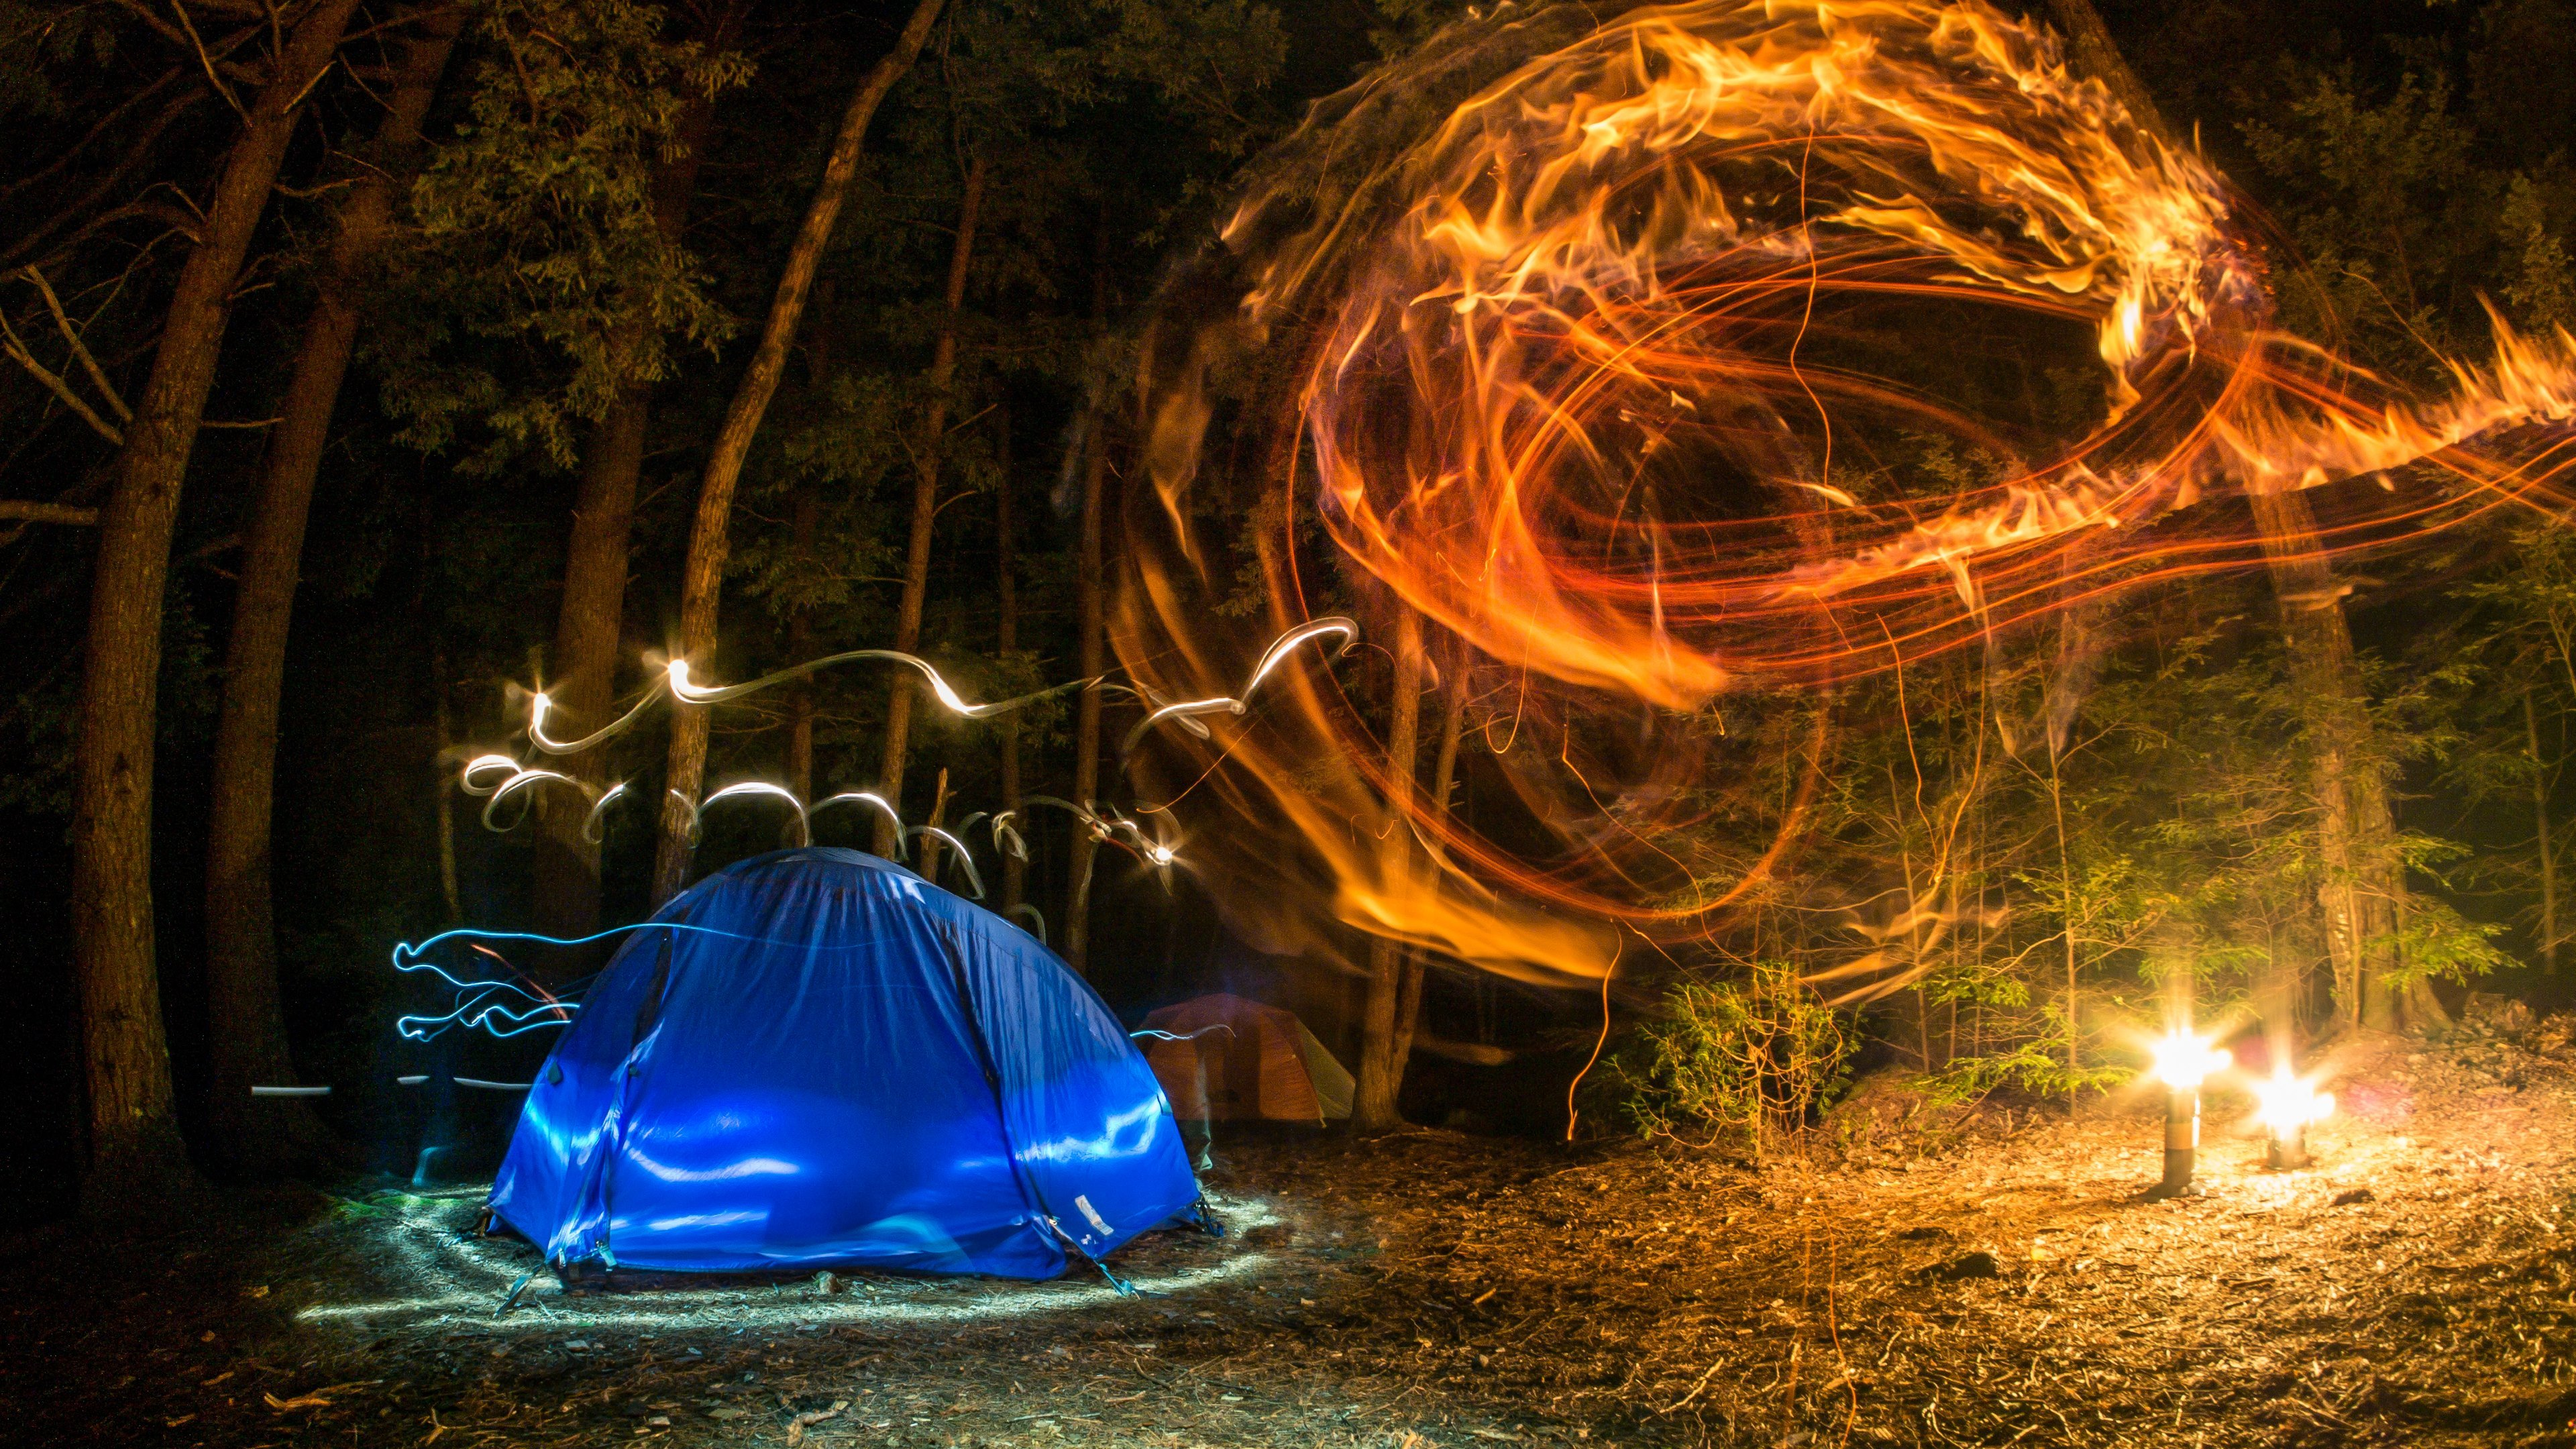 Camping Forest Night Lights Creativity Wallpapers HD Wallpapers 3840x2160